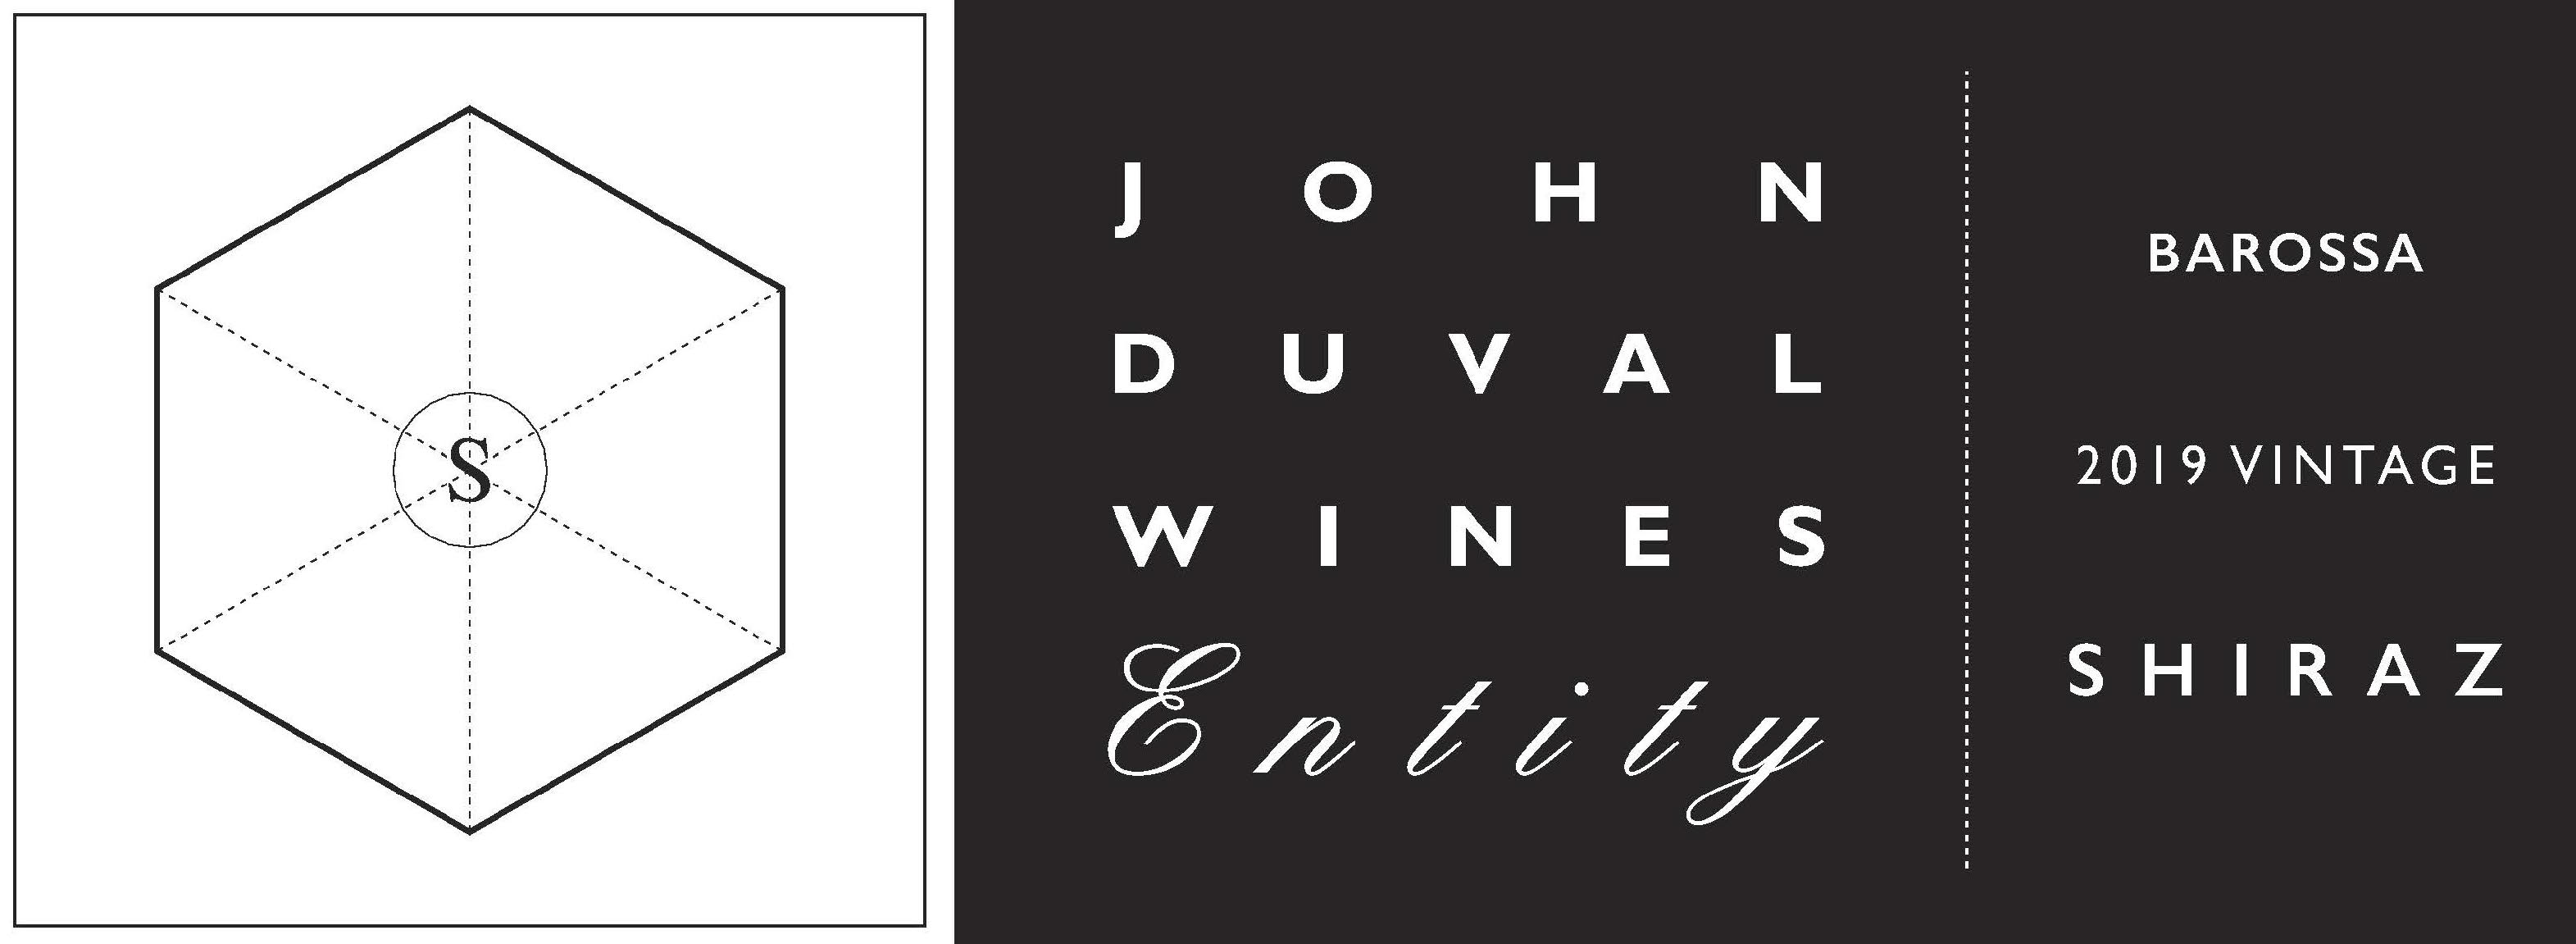 John Duval Entity Shiraz 2018 MAIN